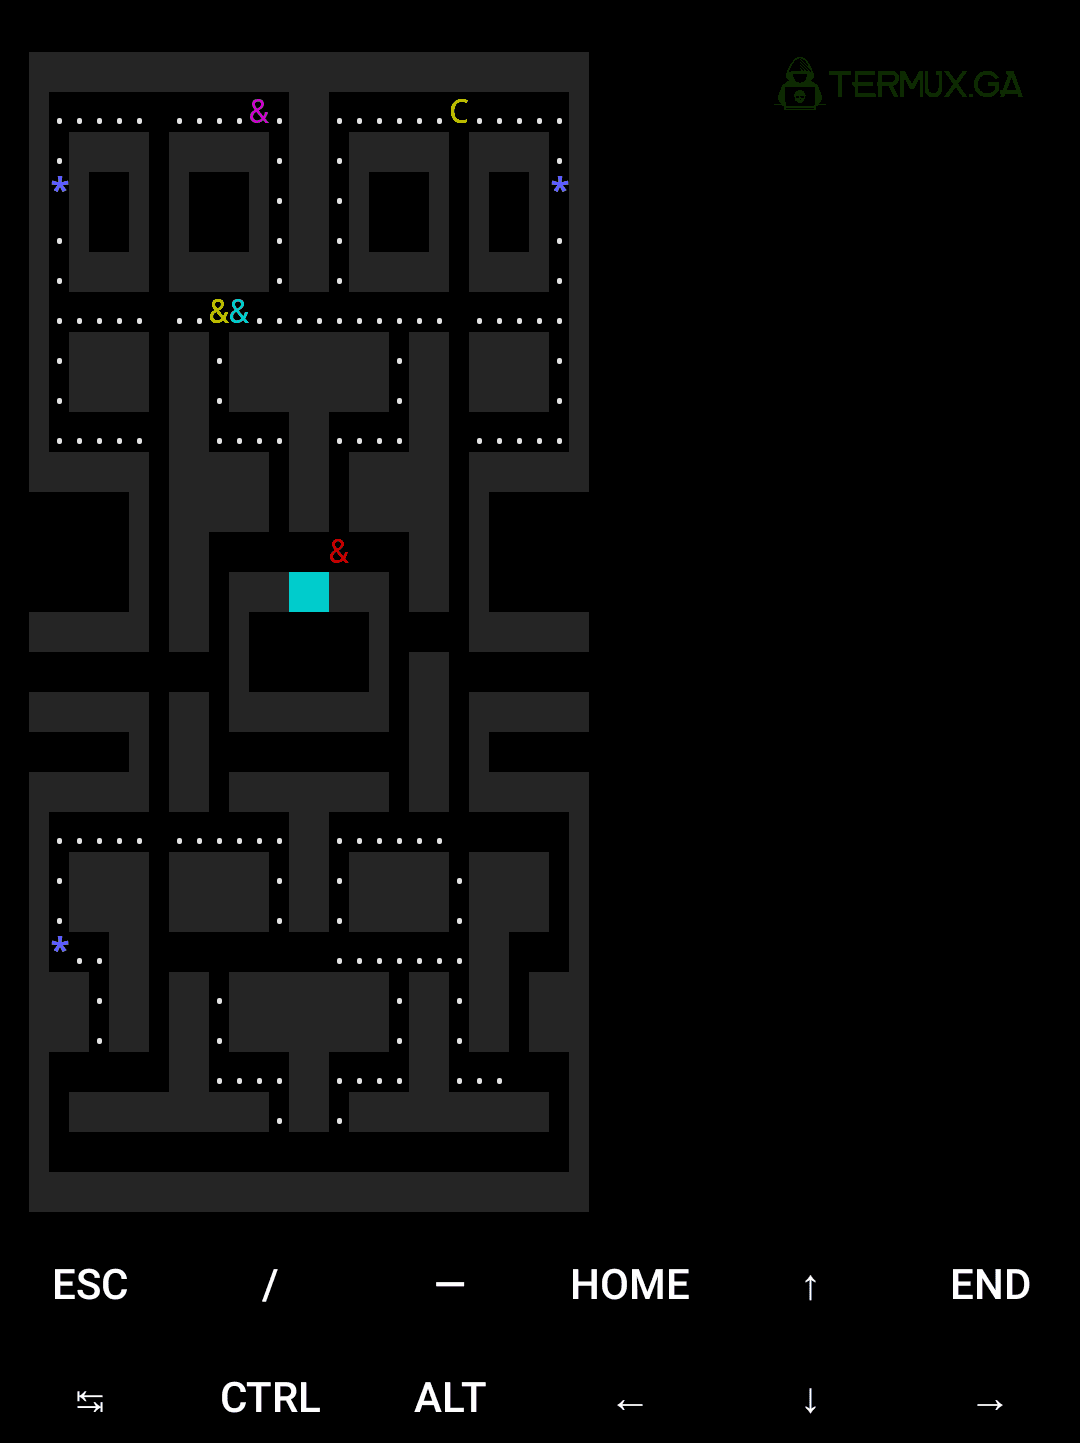 How To play Games in Termux-2020